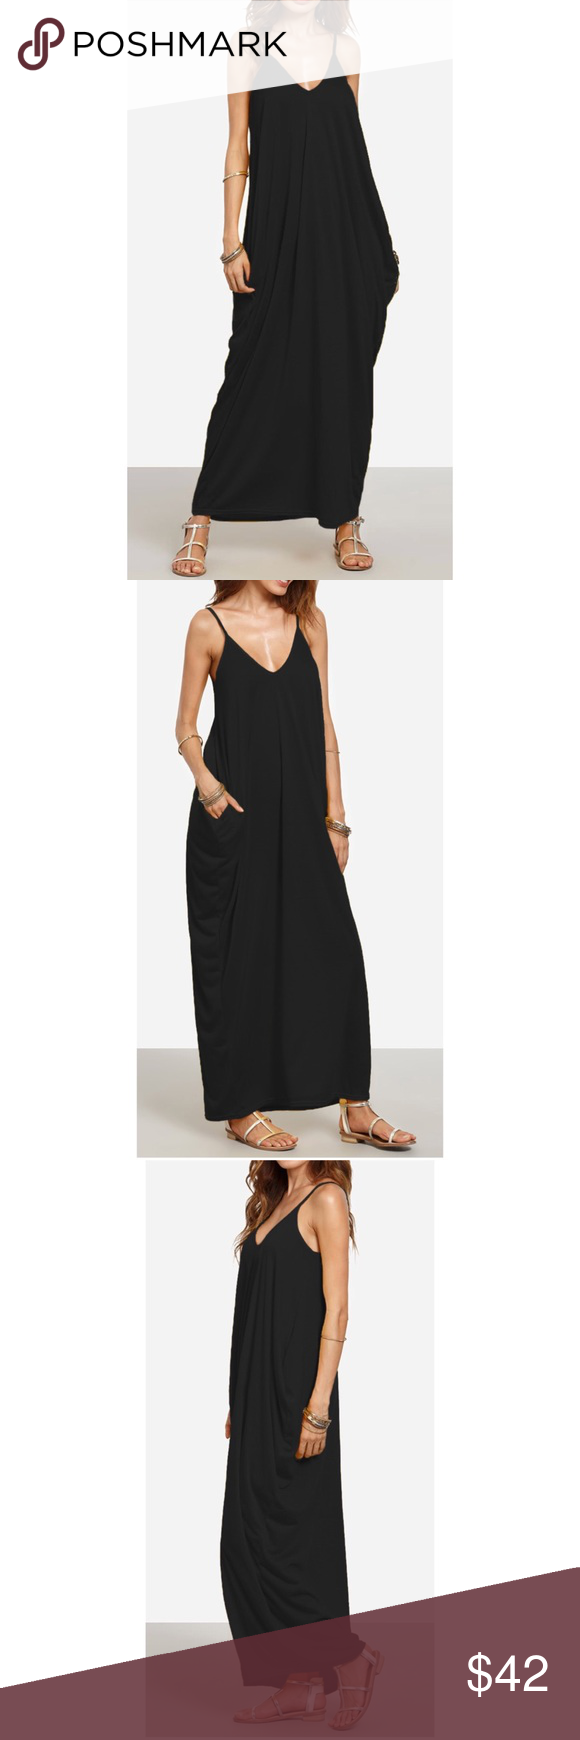 50a9223535 🆕Ahea Black Maxi Dress Brand new. Super comfortable to wear. Fabric has  some